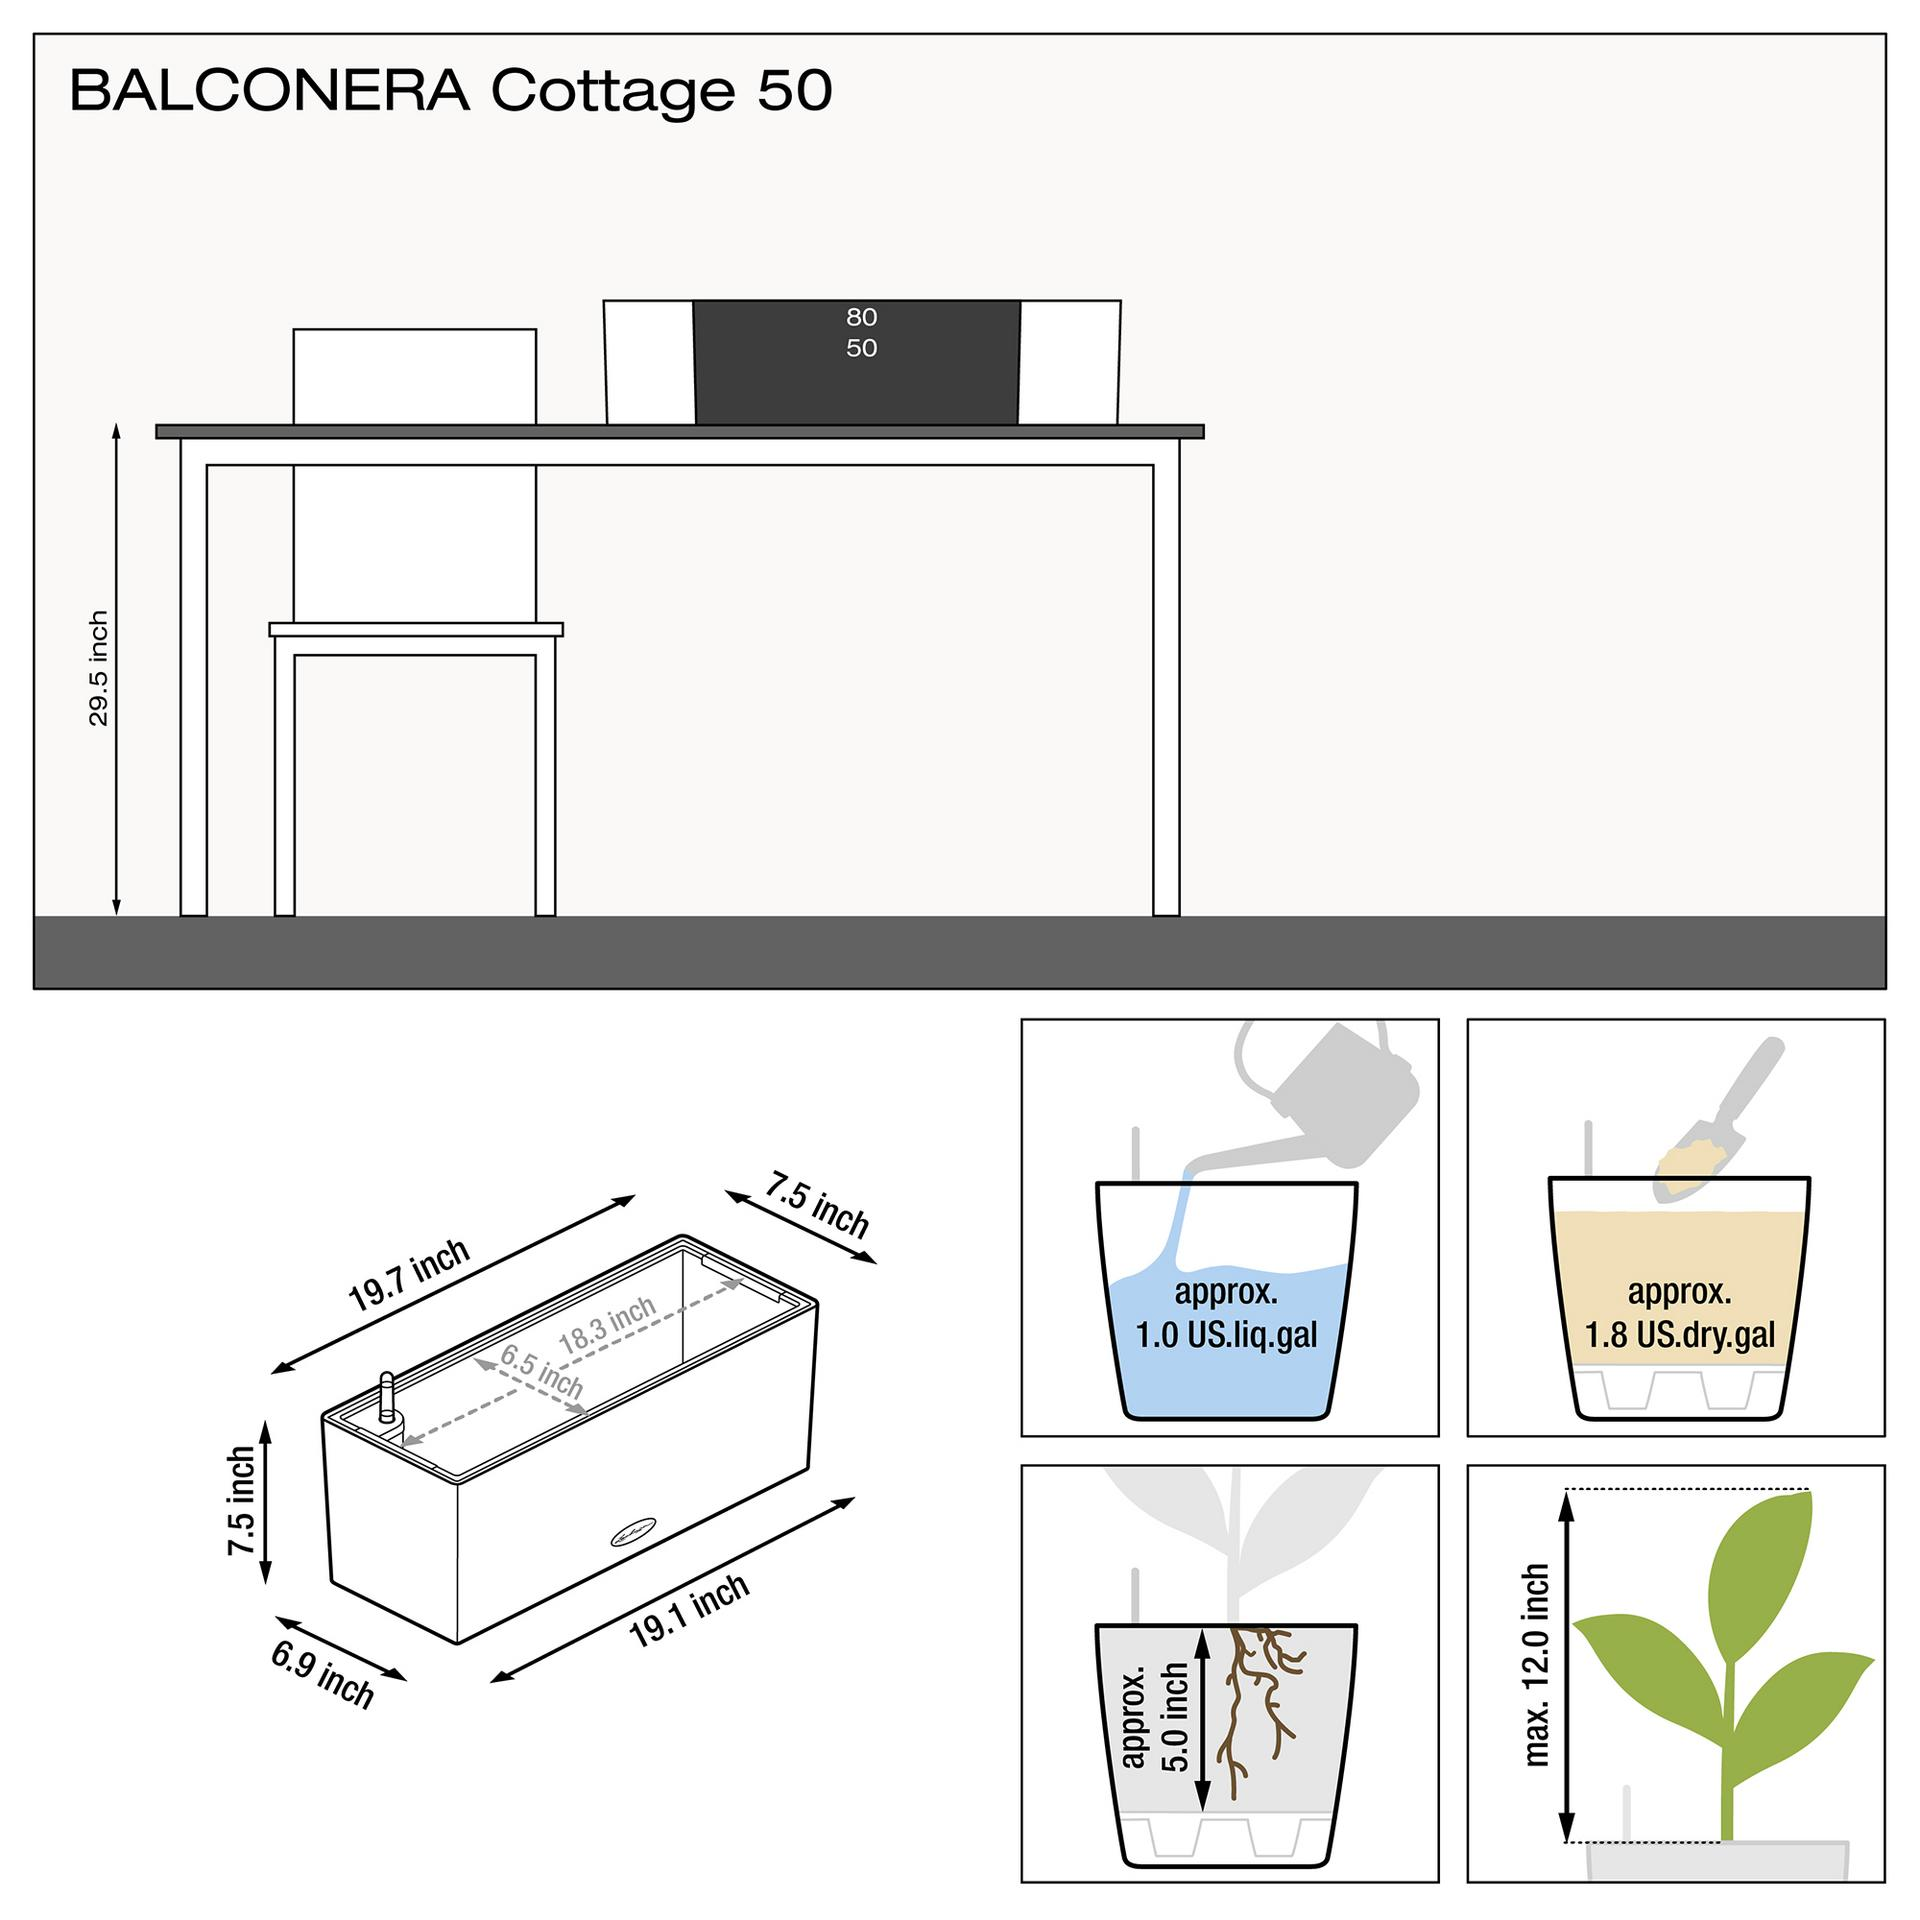 le_balconera-cottage50_product_addi_nz_us